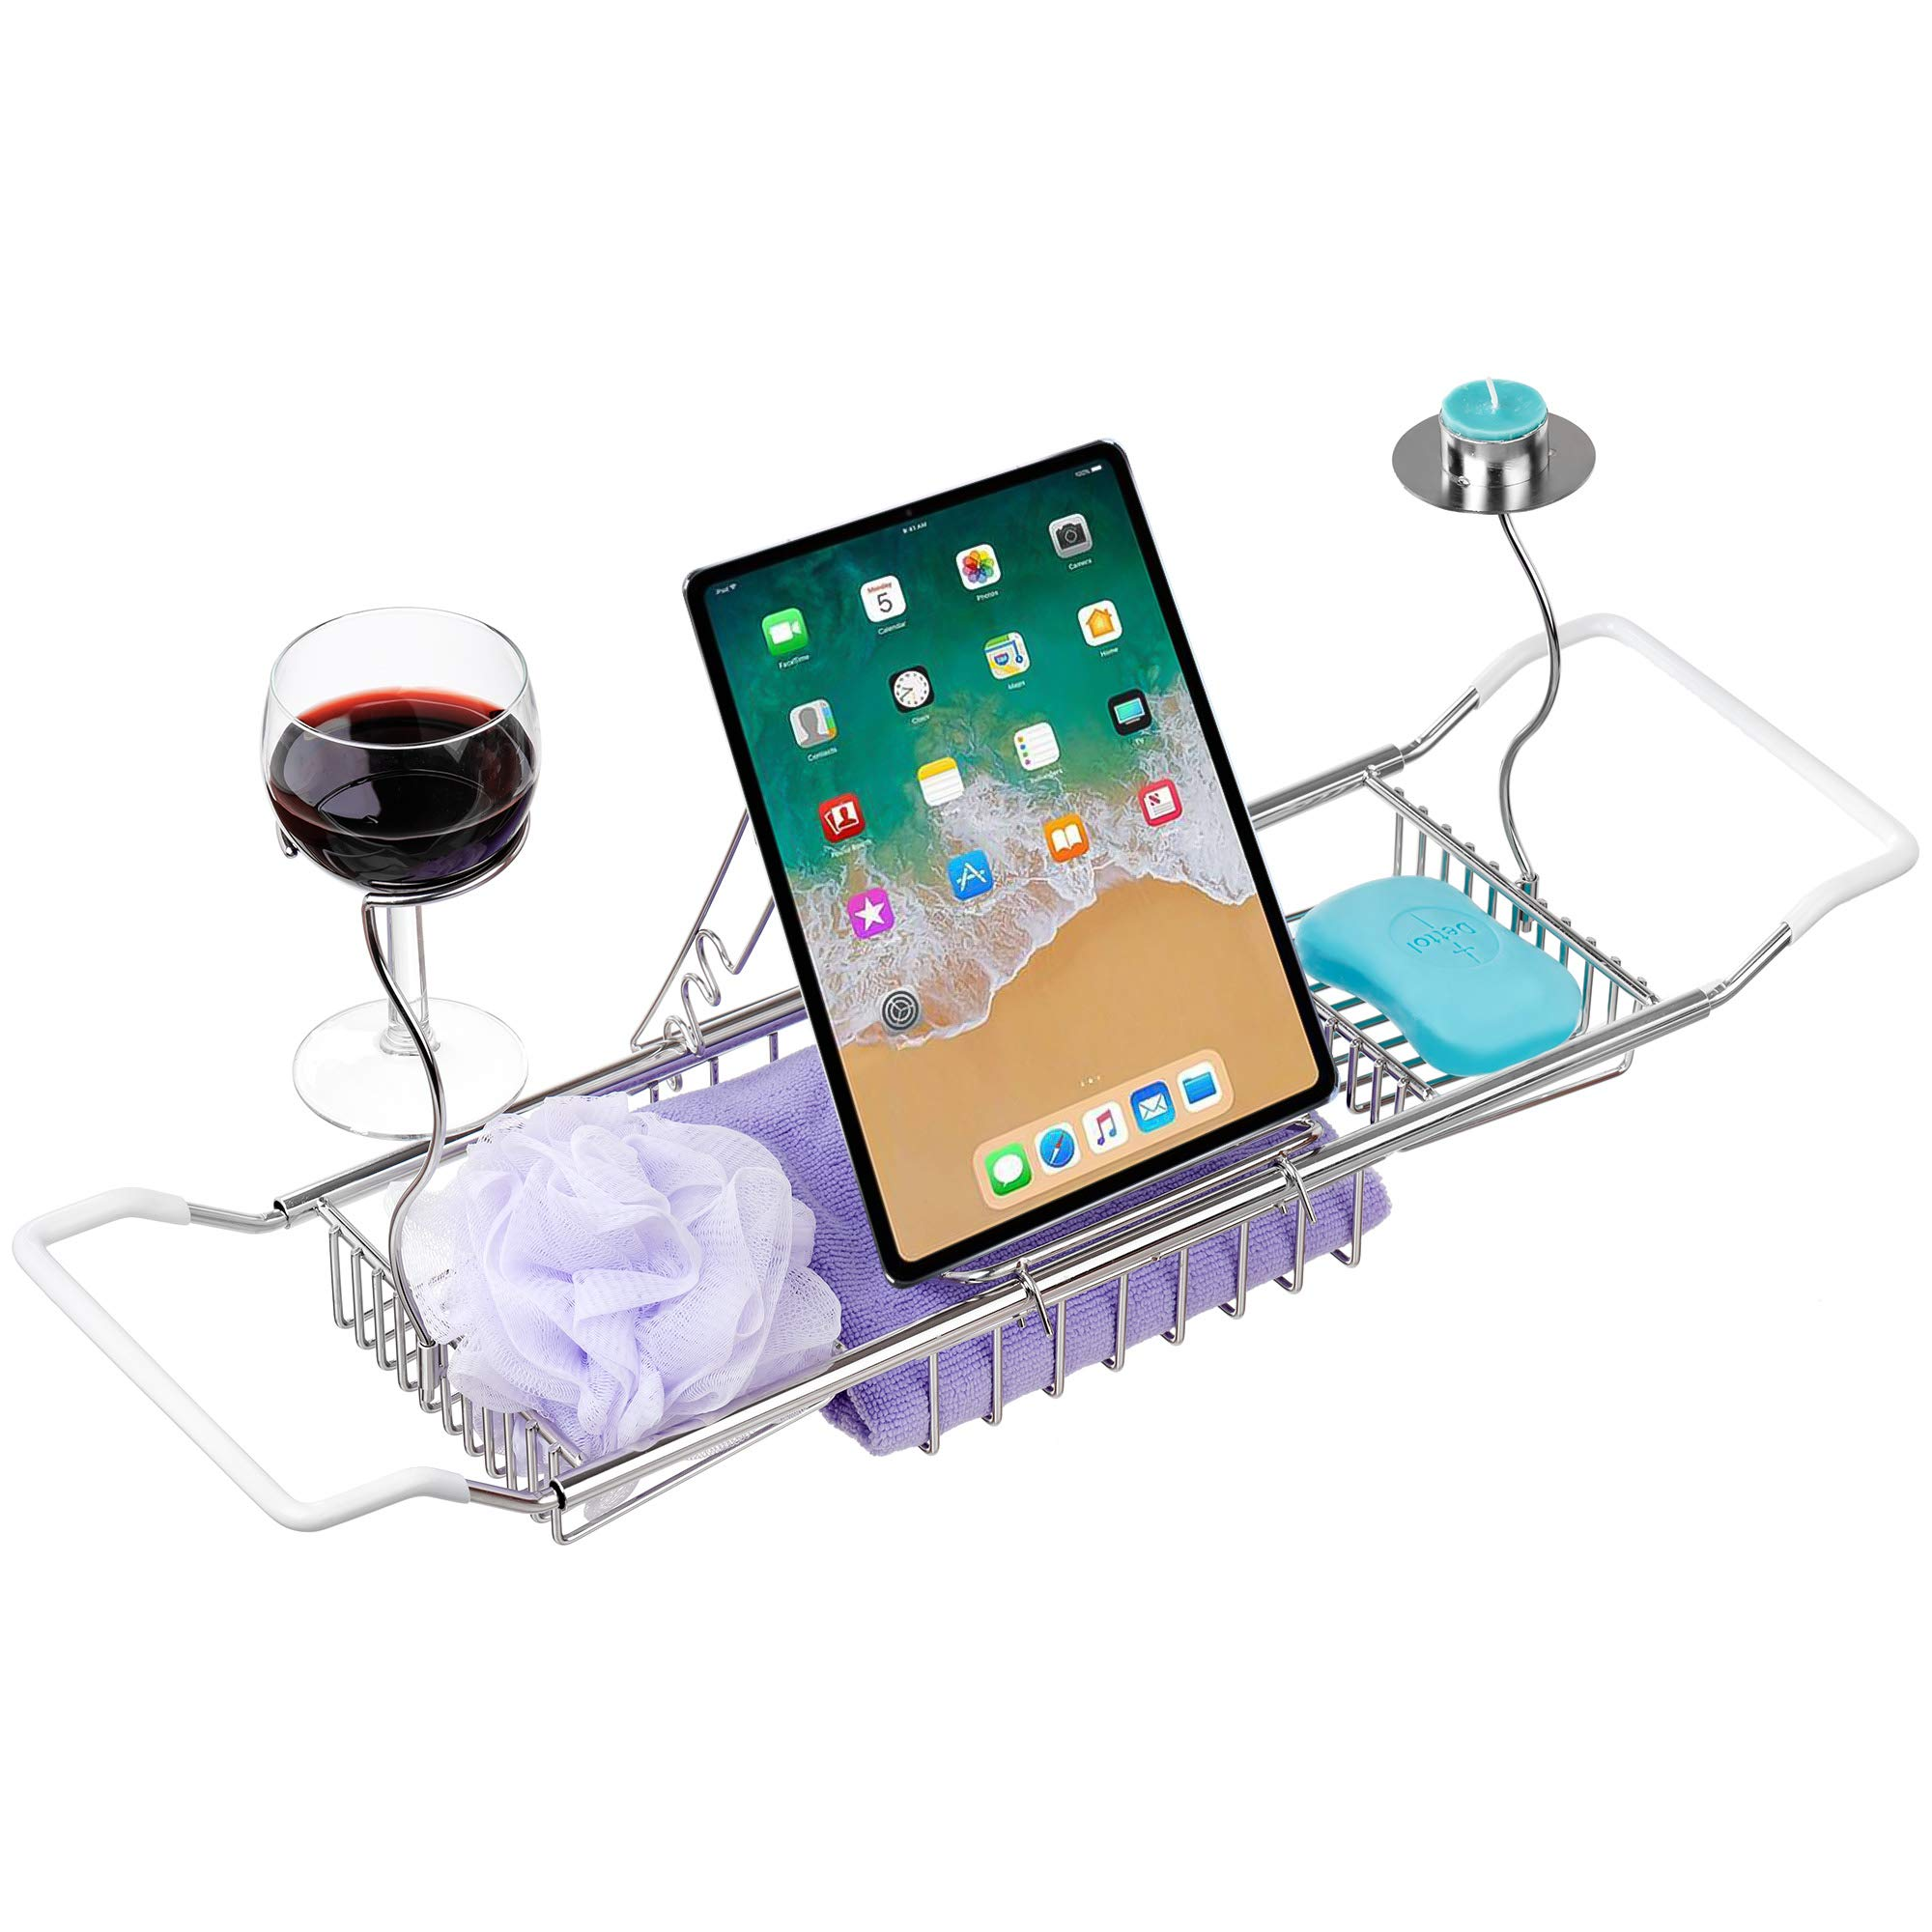 iPEGTOP 304 Stainless Steel Bathtub Caddy Tray Expandable Bath Organizer, Tub Shelf for Reading with Book and Wine Rack, Candleholder